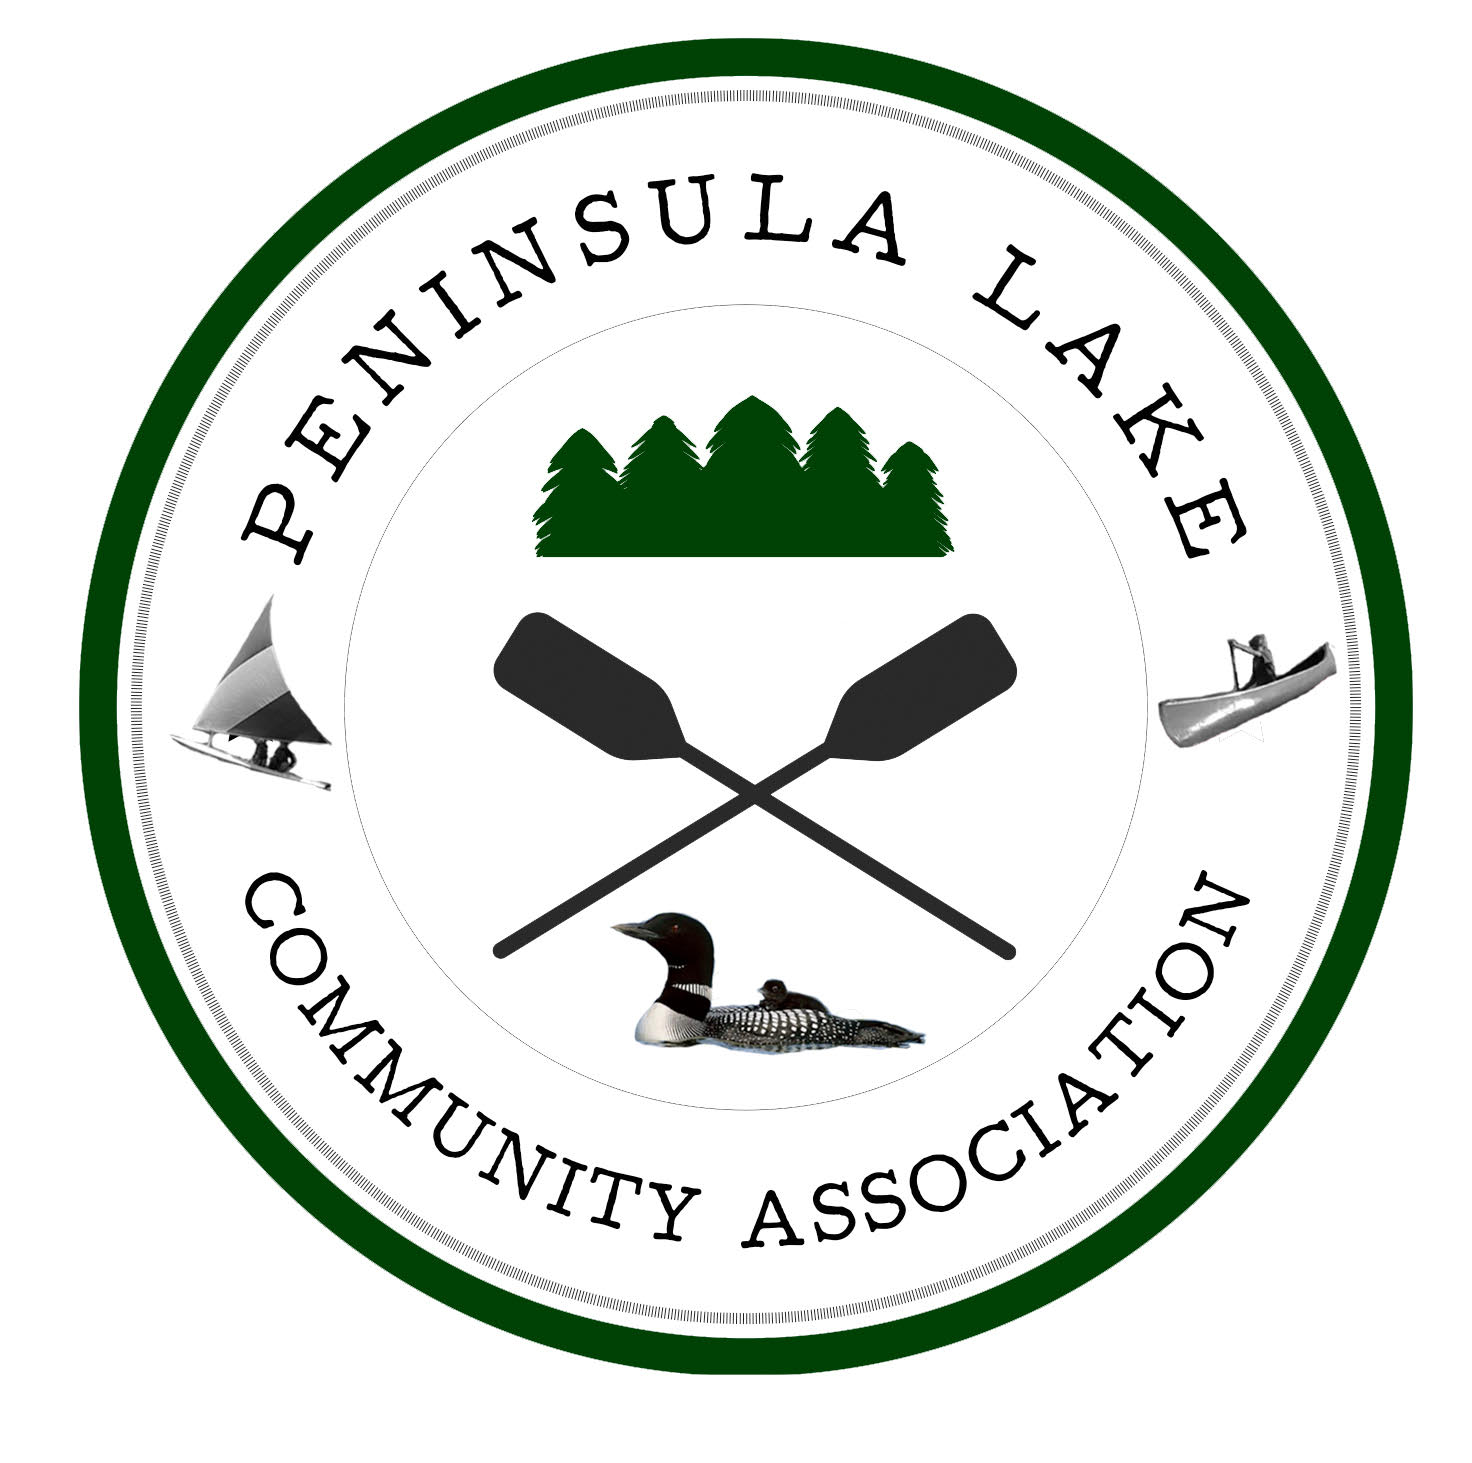 Peninsula Lake Community Association - The PLCA is a not-for-profit with an active membership. The Association is proud of its mandate which is to preserve, protect, restore and improve the natural resources, water quality and environment of the Peninsula Lake watershed. The Association is also proud of its history, the unbroken length of time some families have been at the Lake, and its active membership. Community involvement is necessary to maintain and improve the quality of life at the Lake.